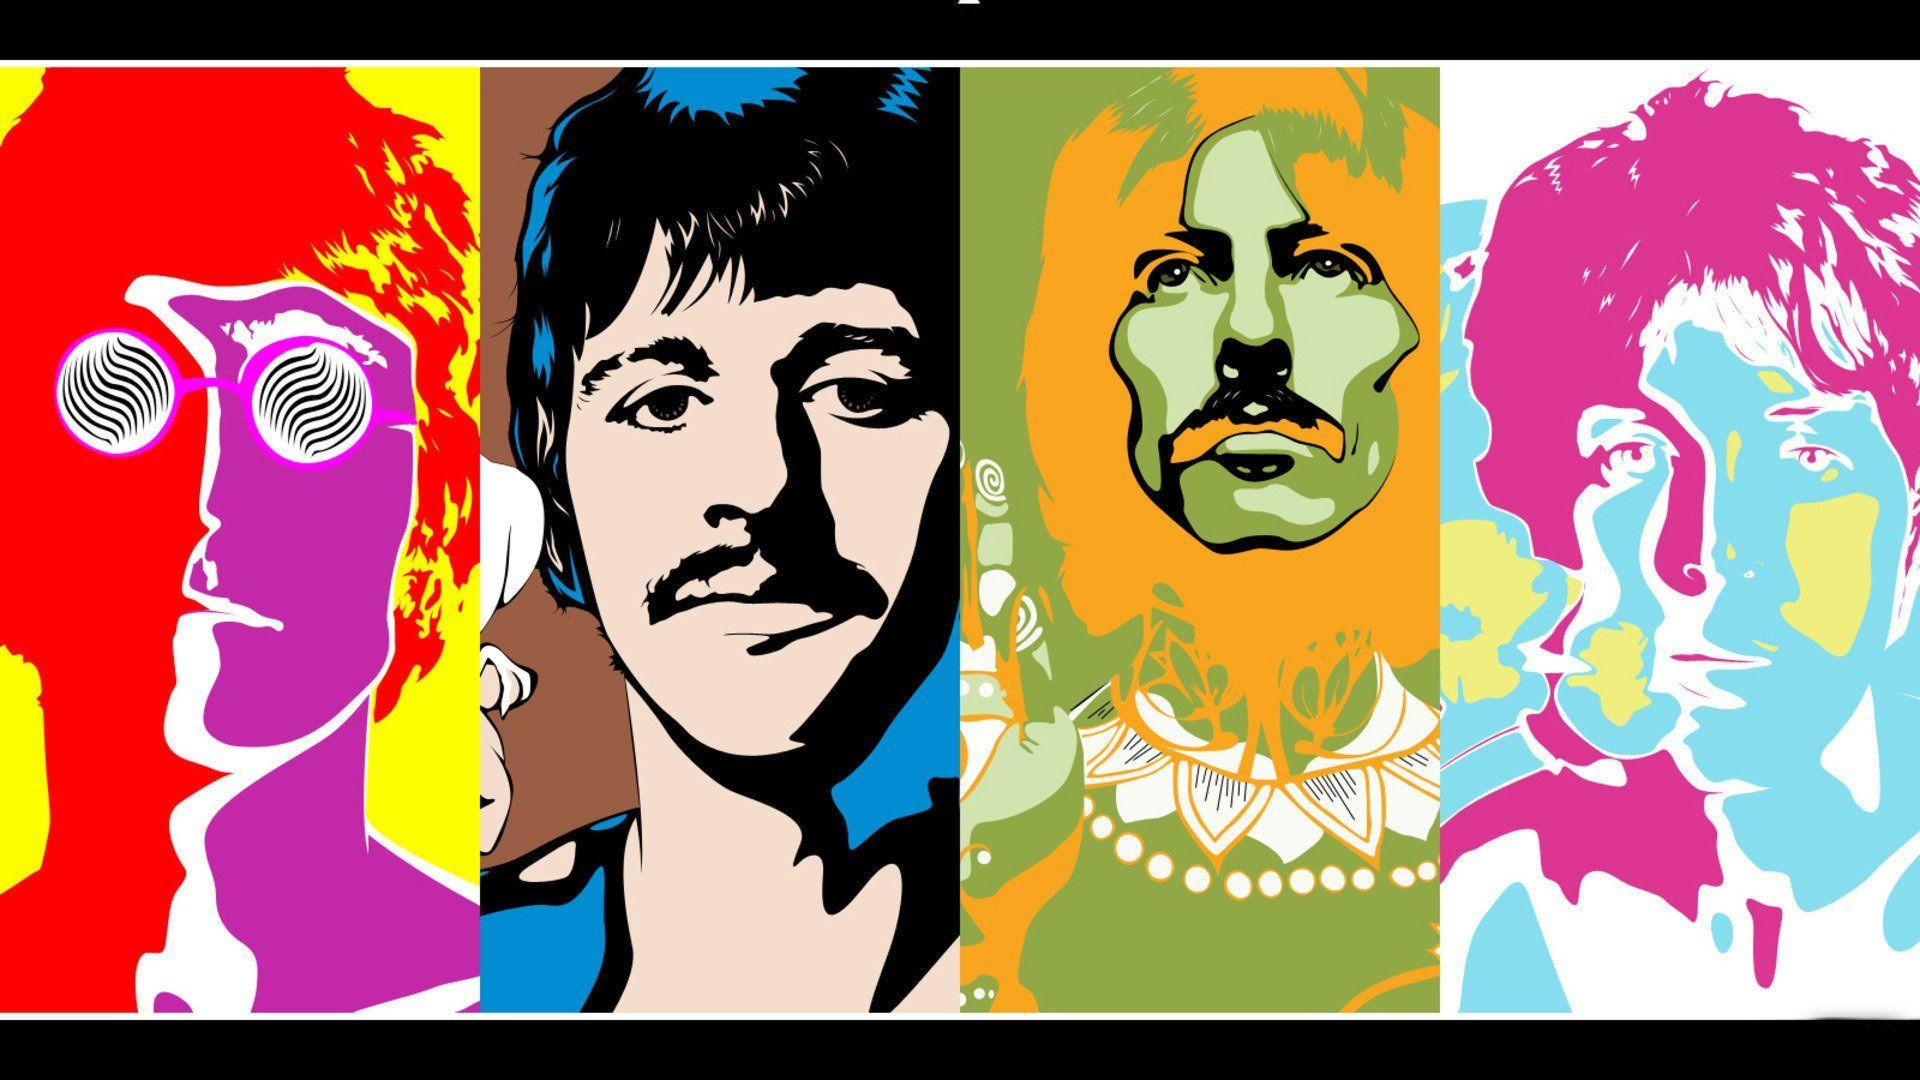 Kumpulan John Lennon The Beatles 4k Hd Wallpaper - Page 2 - www ...